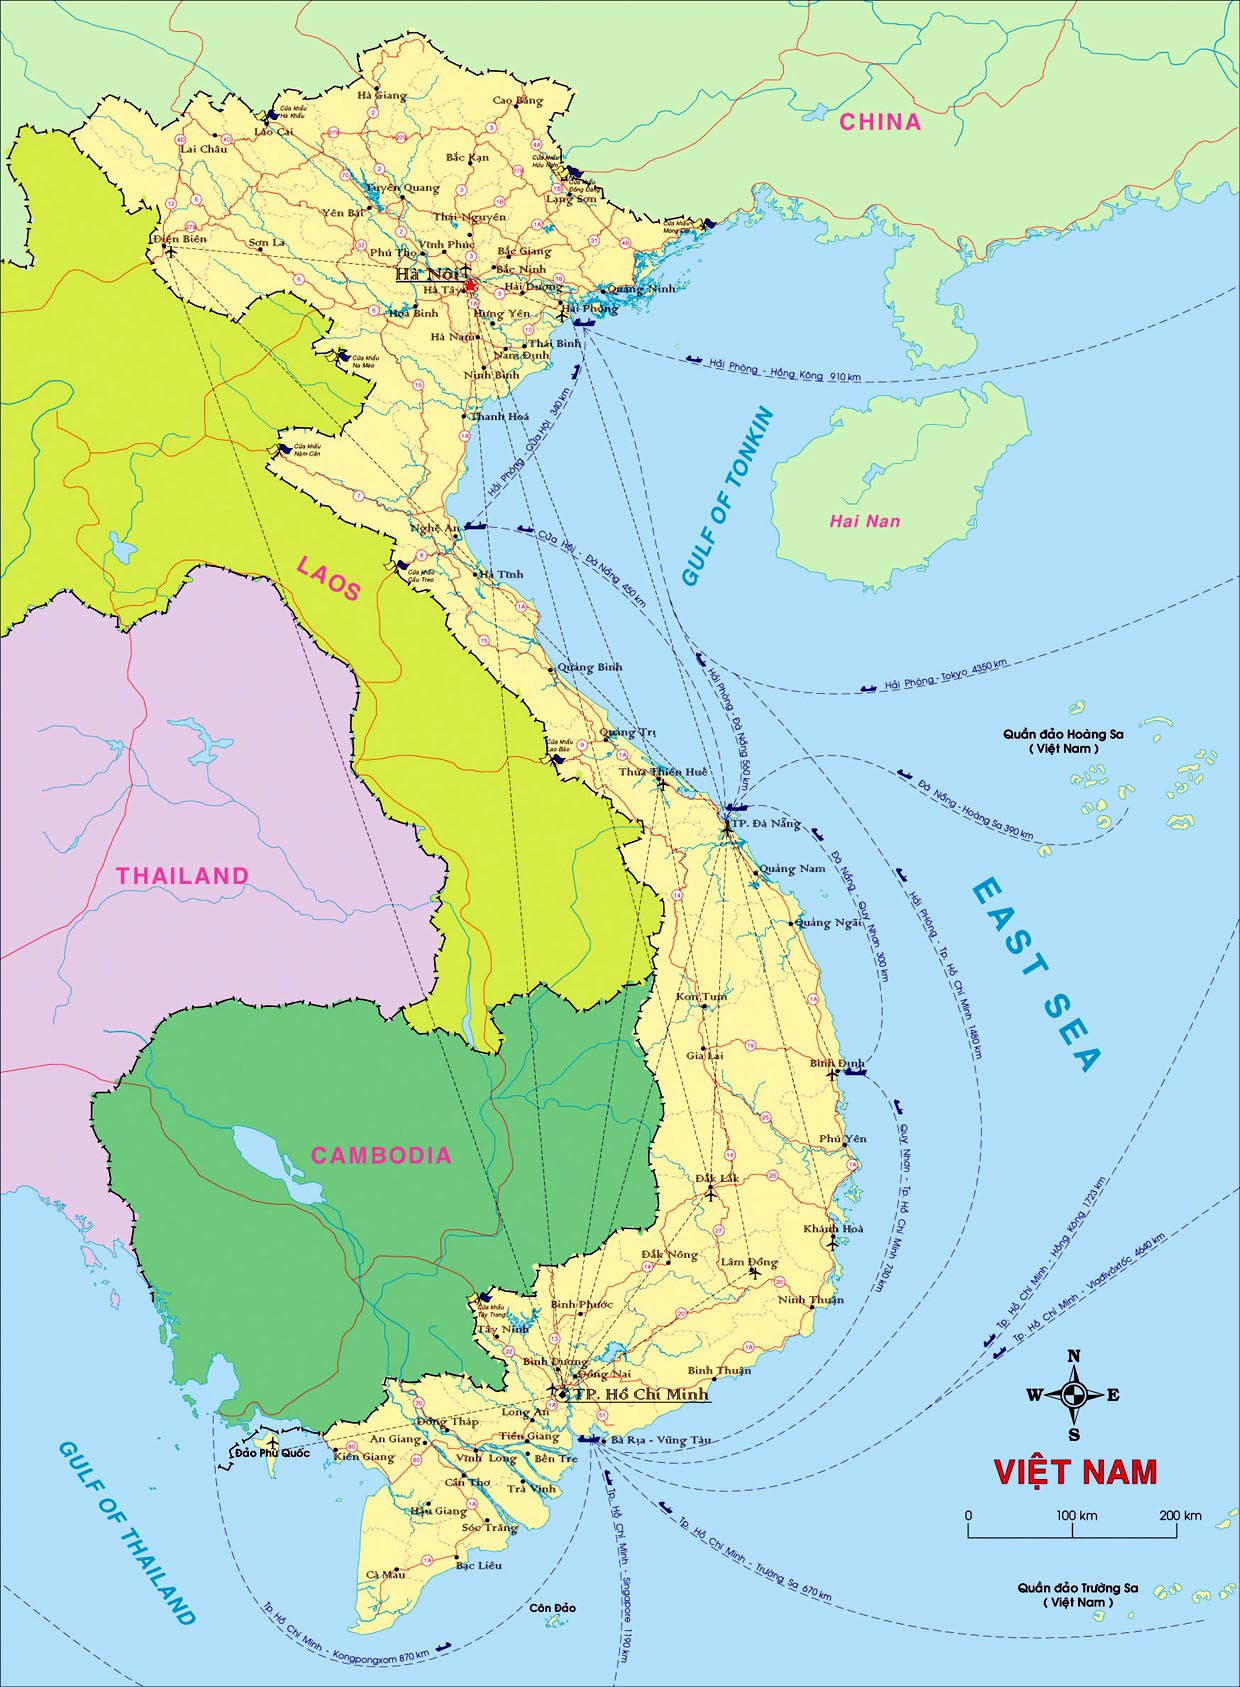 Map Of Viet Nam Vietnam Maps | Printable Maps of Vietnam for Download Map Of Viet Nam